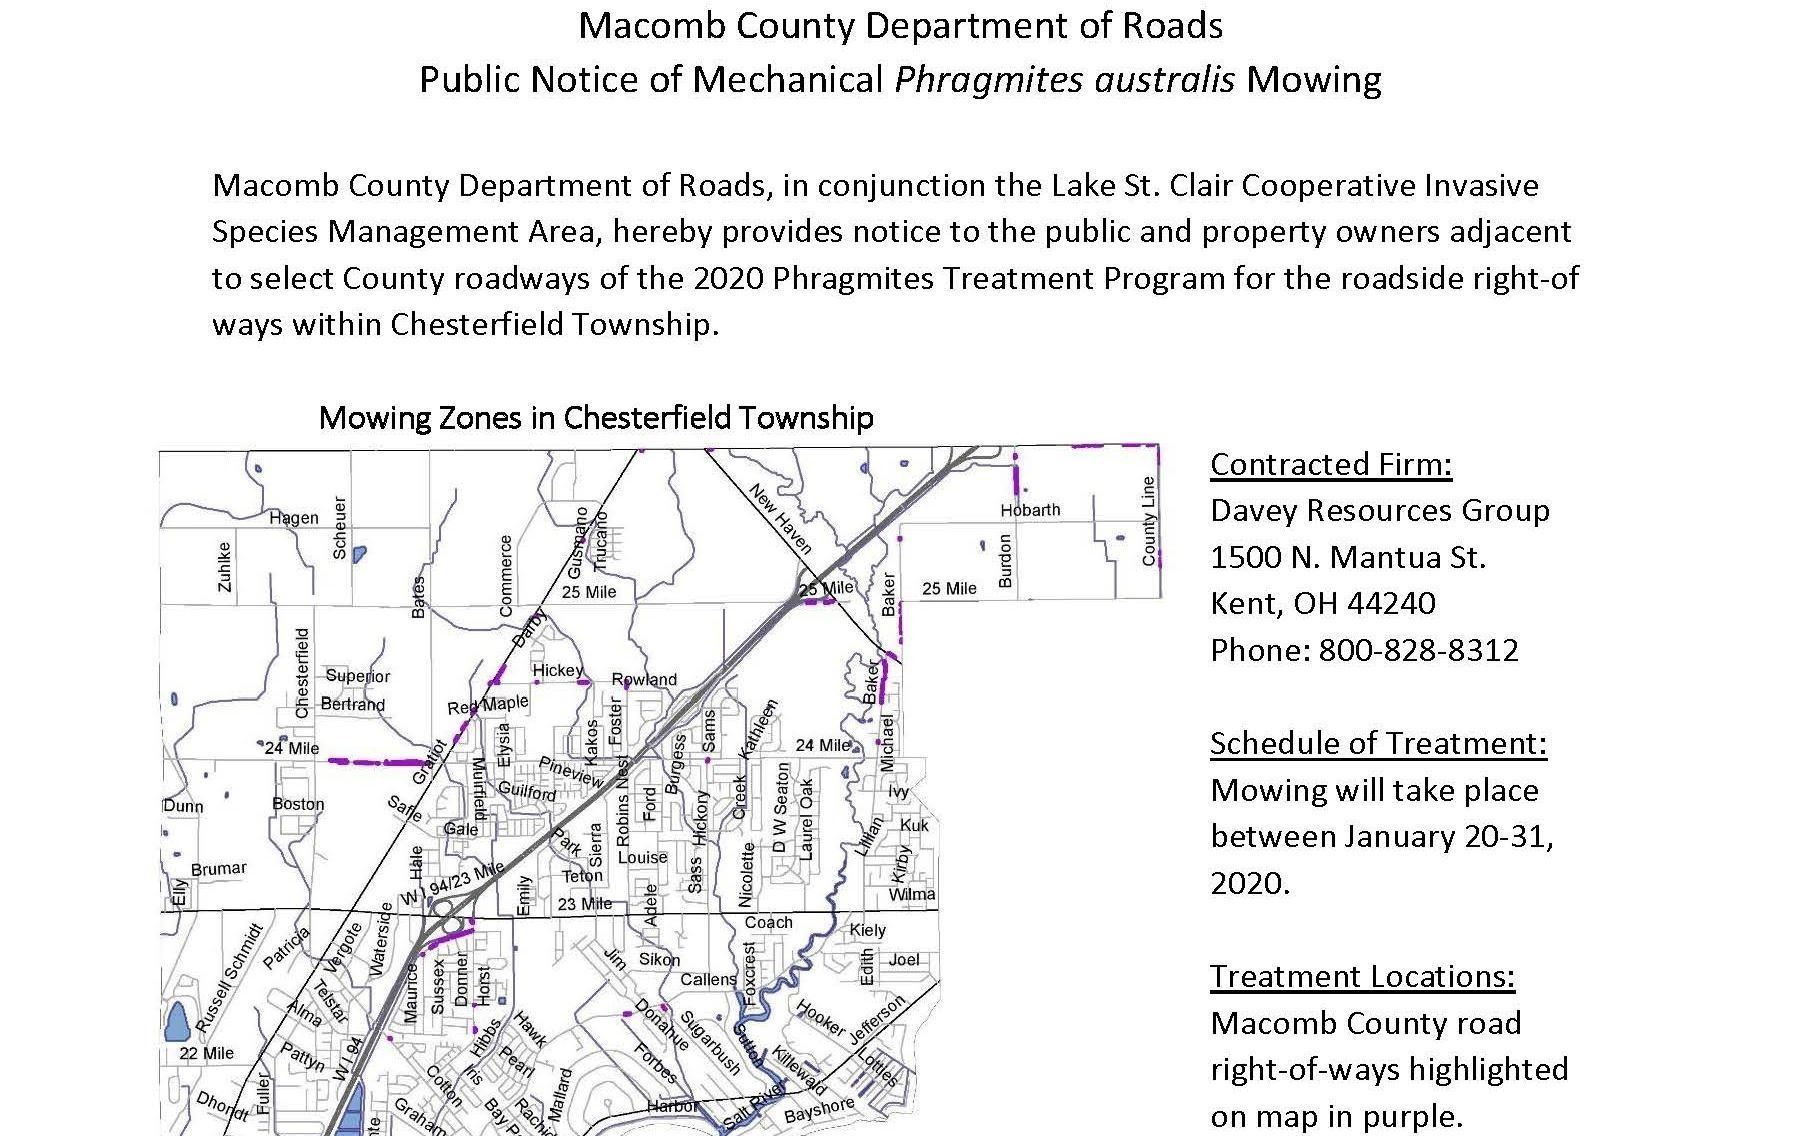 2020.1.7_Chesterfield_Public Notice_2020